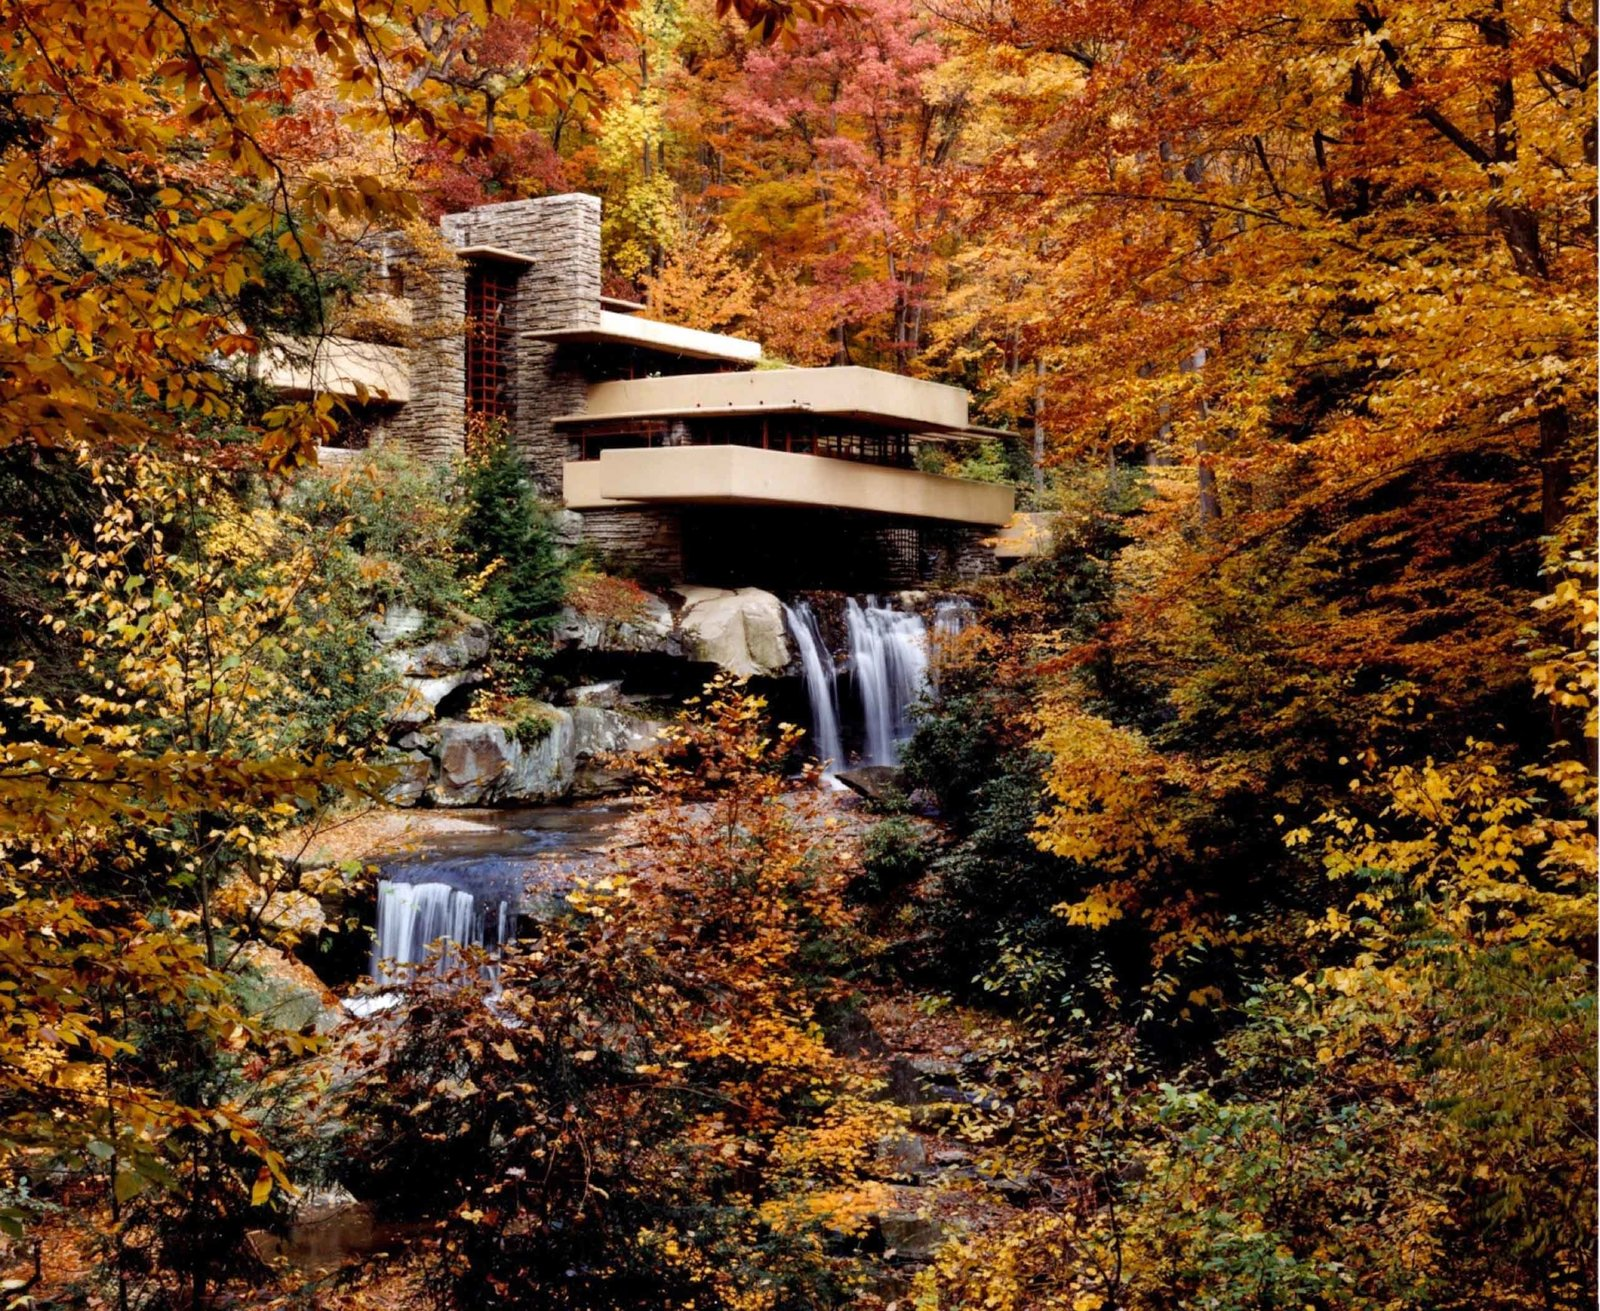 Exterior, Metal Siding Material, Concrete Siding Material, House Building Type, and Glass Siding Material Fallingwater (1935, Mill Run, Pennsylvania). The legendary Fallingwater residence, a masterpiece in concrete, steel, and glass, is built with three levels that project over a 30-foot waterfall.  Iconic Frank Lloyd Wright Buildings by Allie Weiss